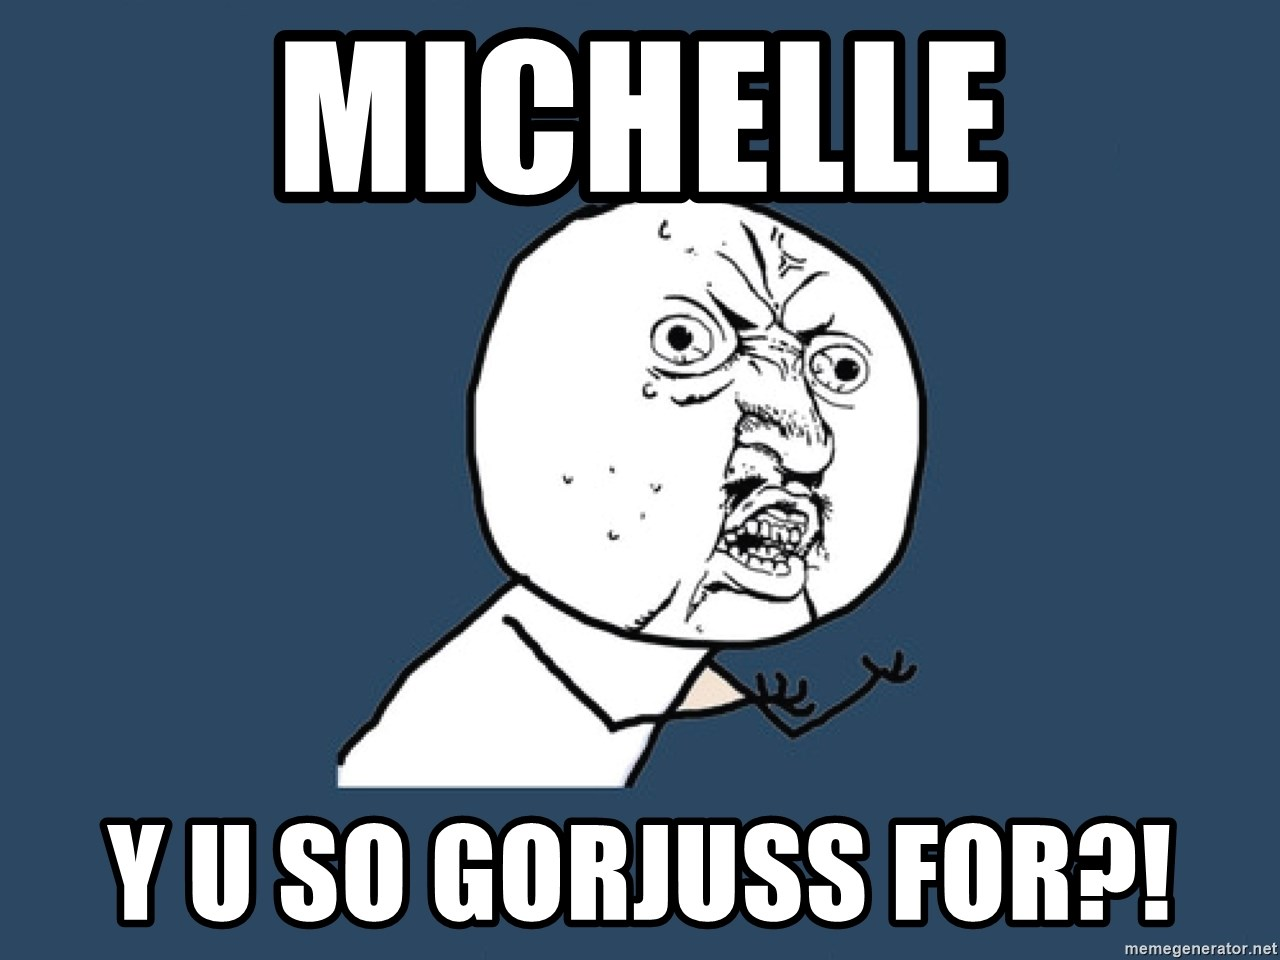 Y U No - michelle y u so gorjuss for?!